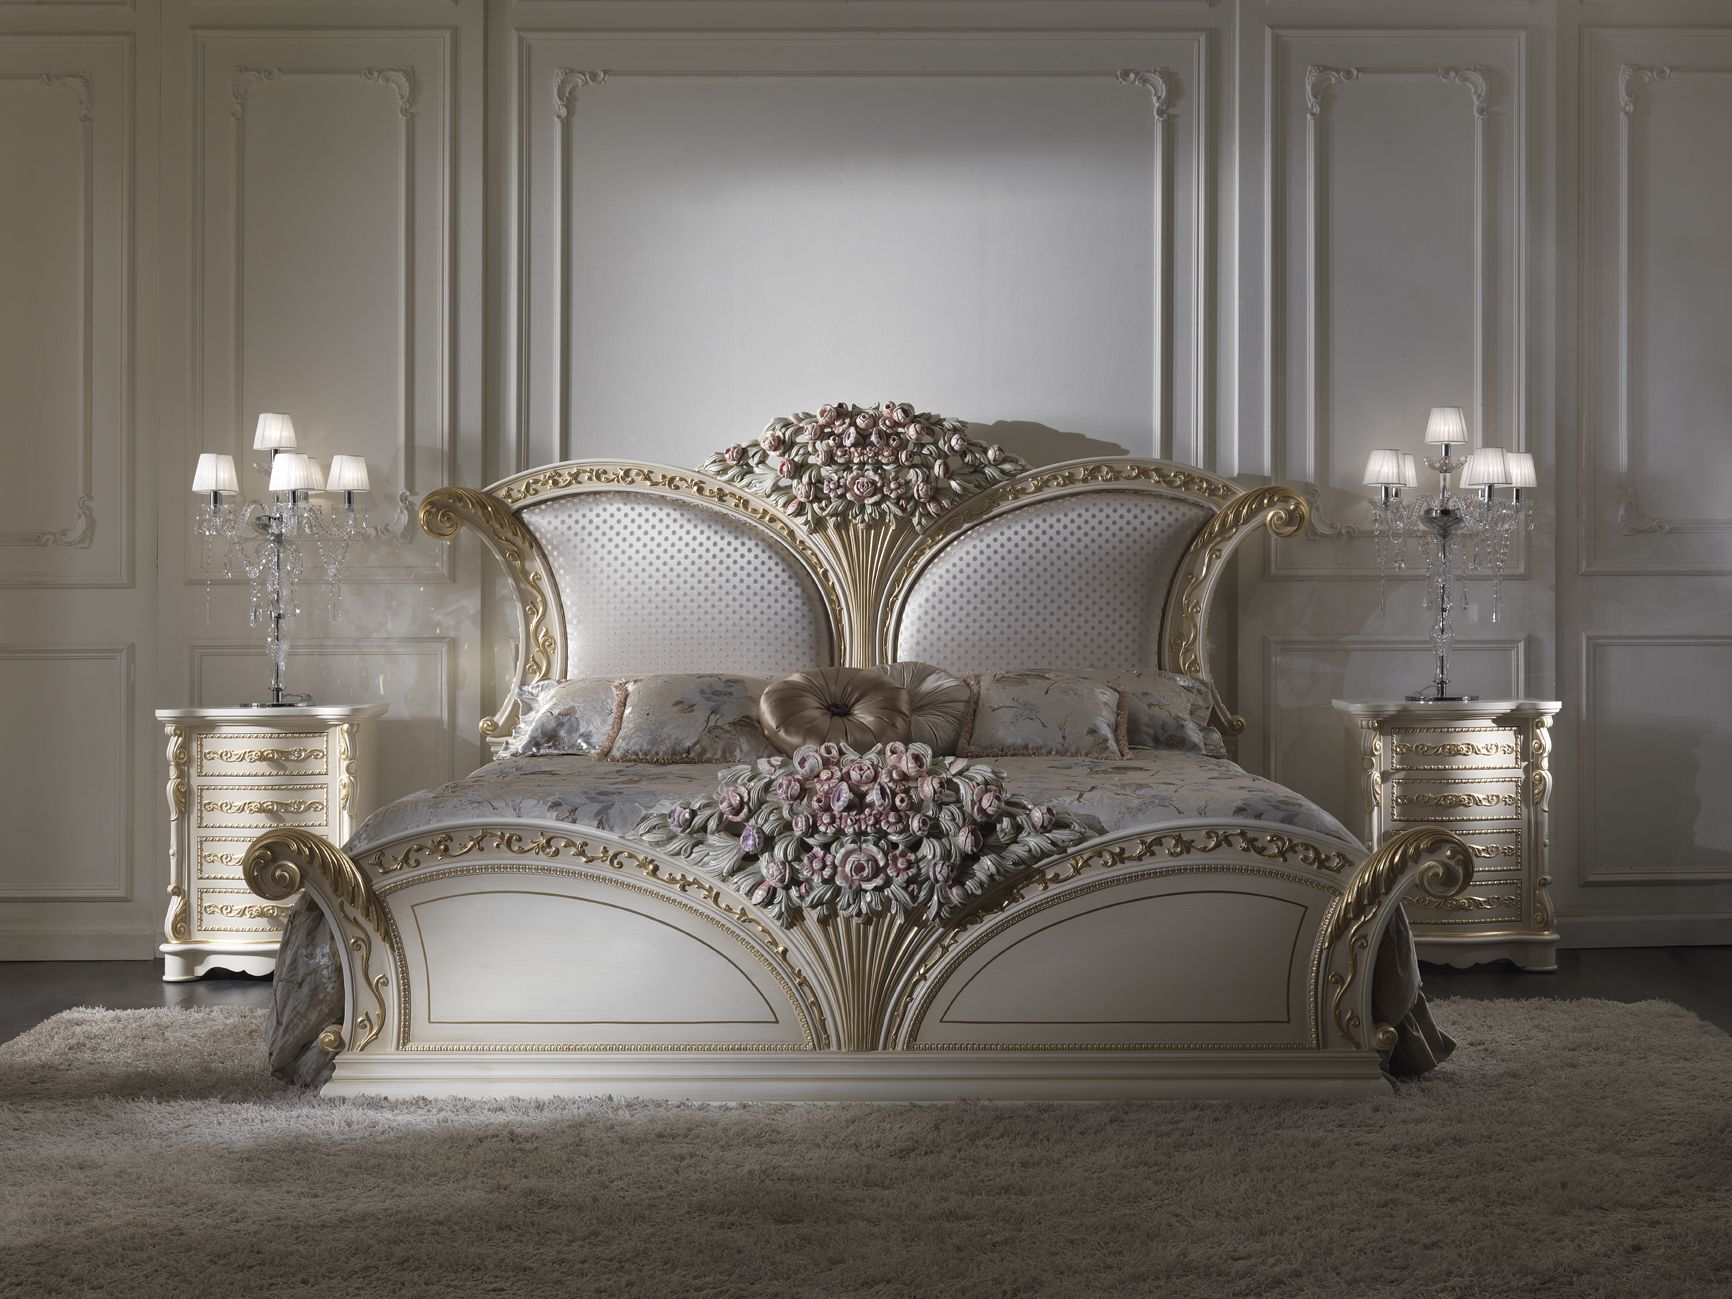 Luxury bedroom bed flower CEPPISTYLE For the Home in